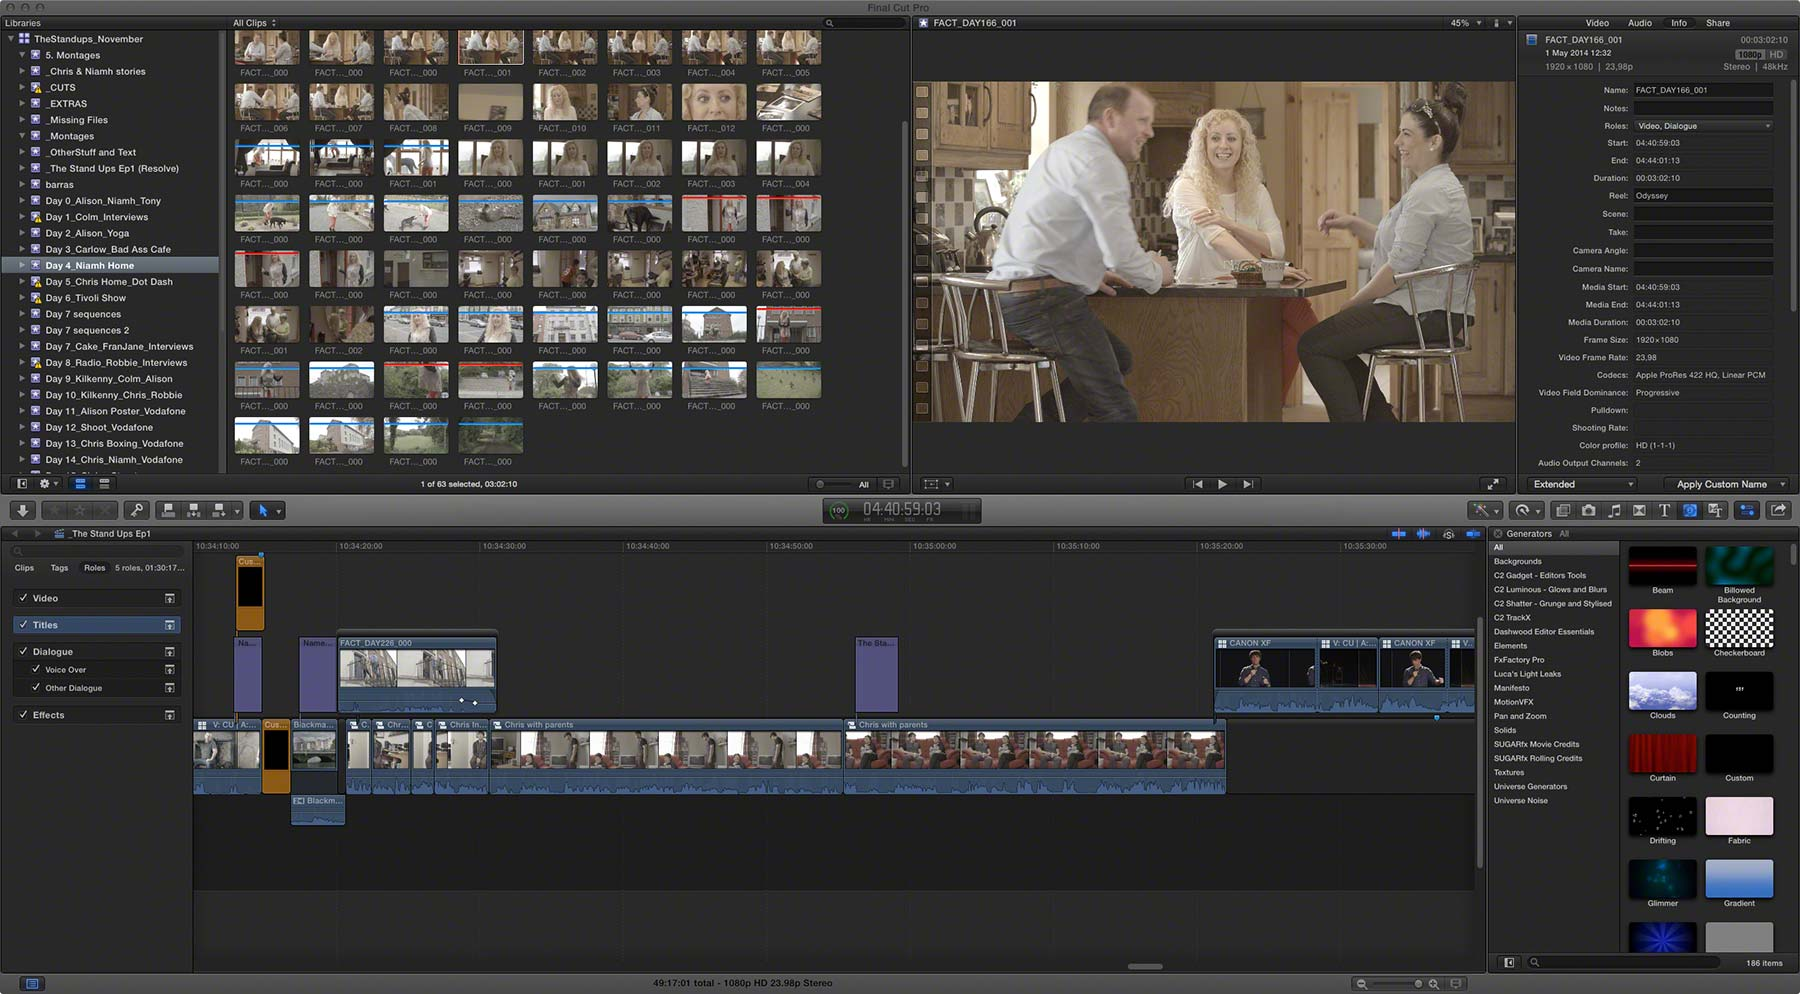 TSU1 Documentary Timeline in FCPX